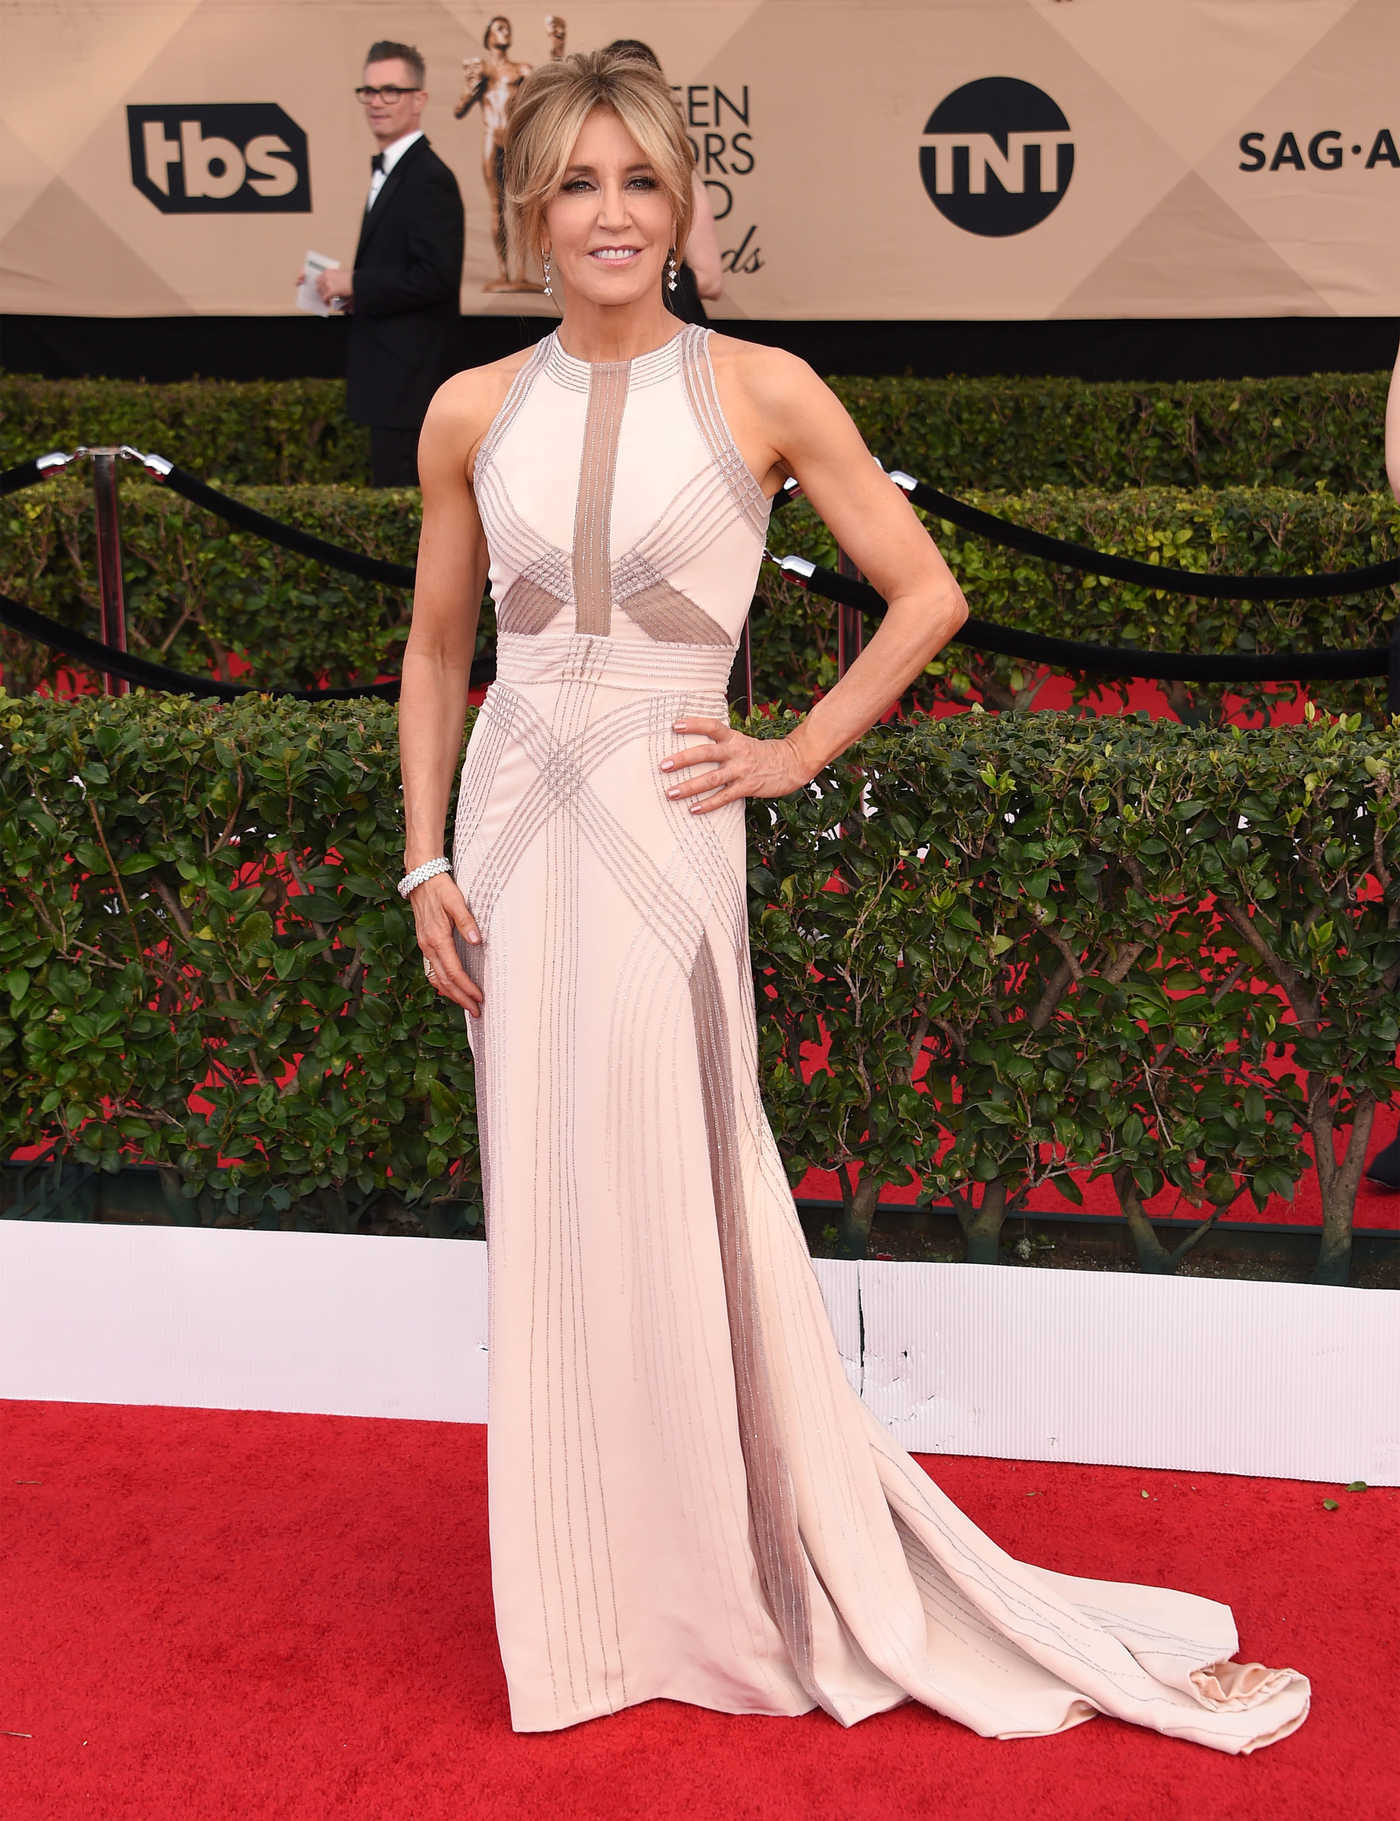 Felicity Huffman at the 23rd Annual Screen Actors Guild Awards in Los Angeles 01/29/2017